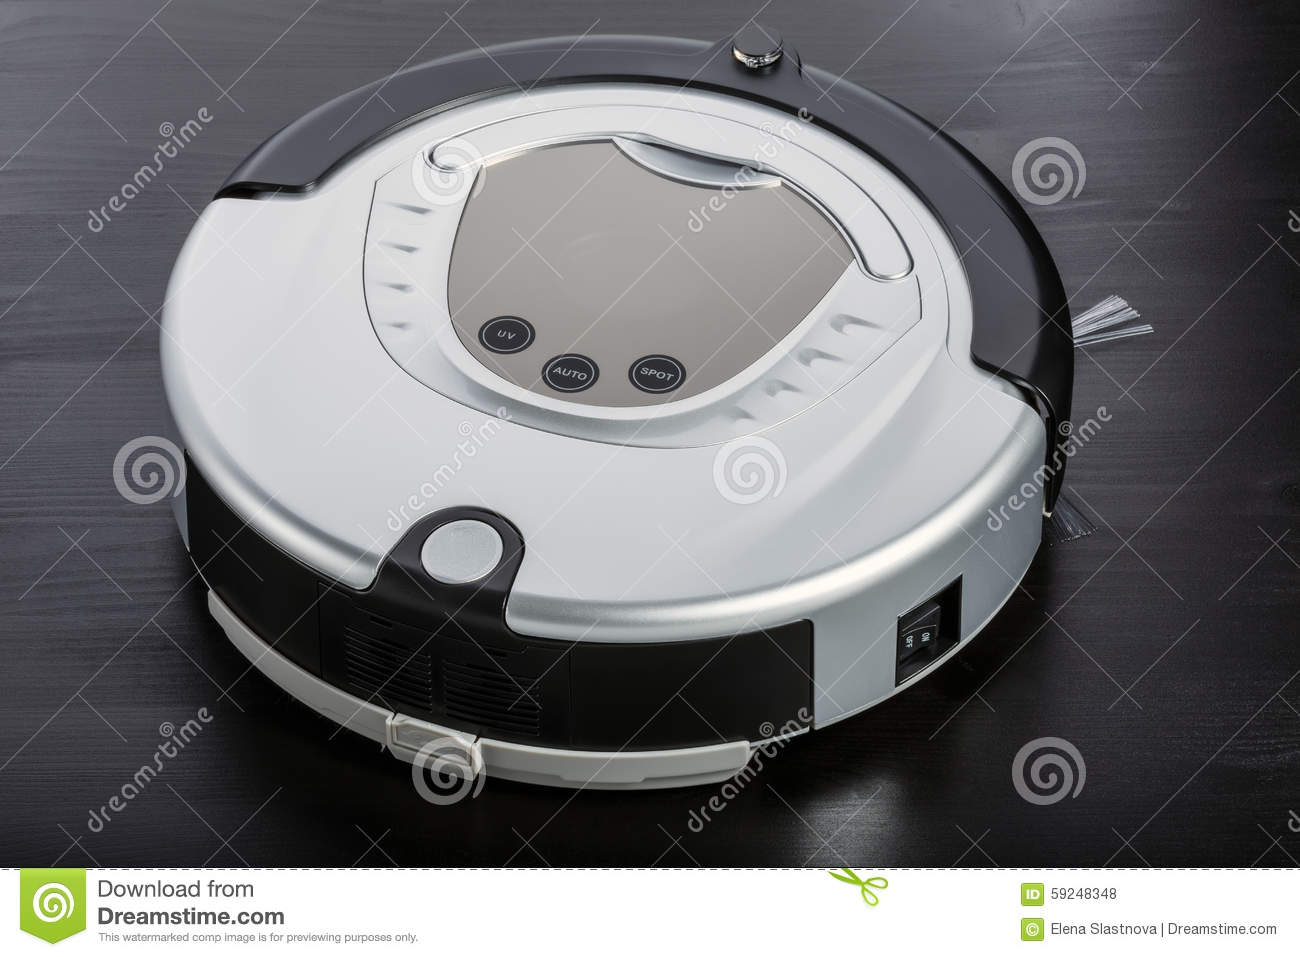 Silver Robot Vacuum Cleaner Stock Photo - Image of appliance